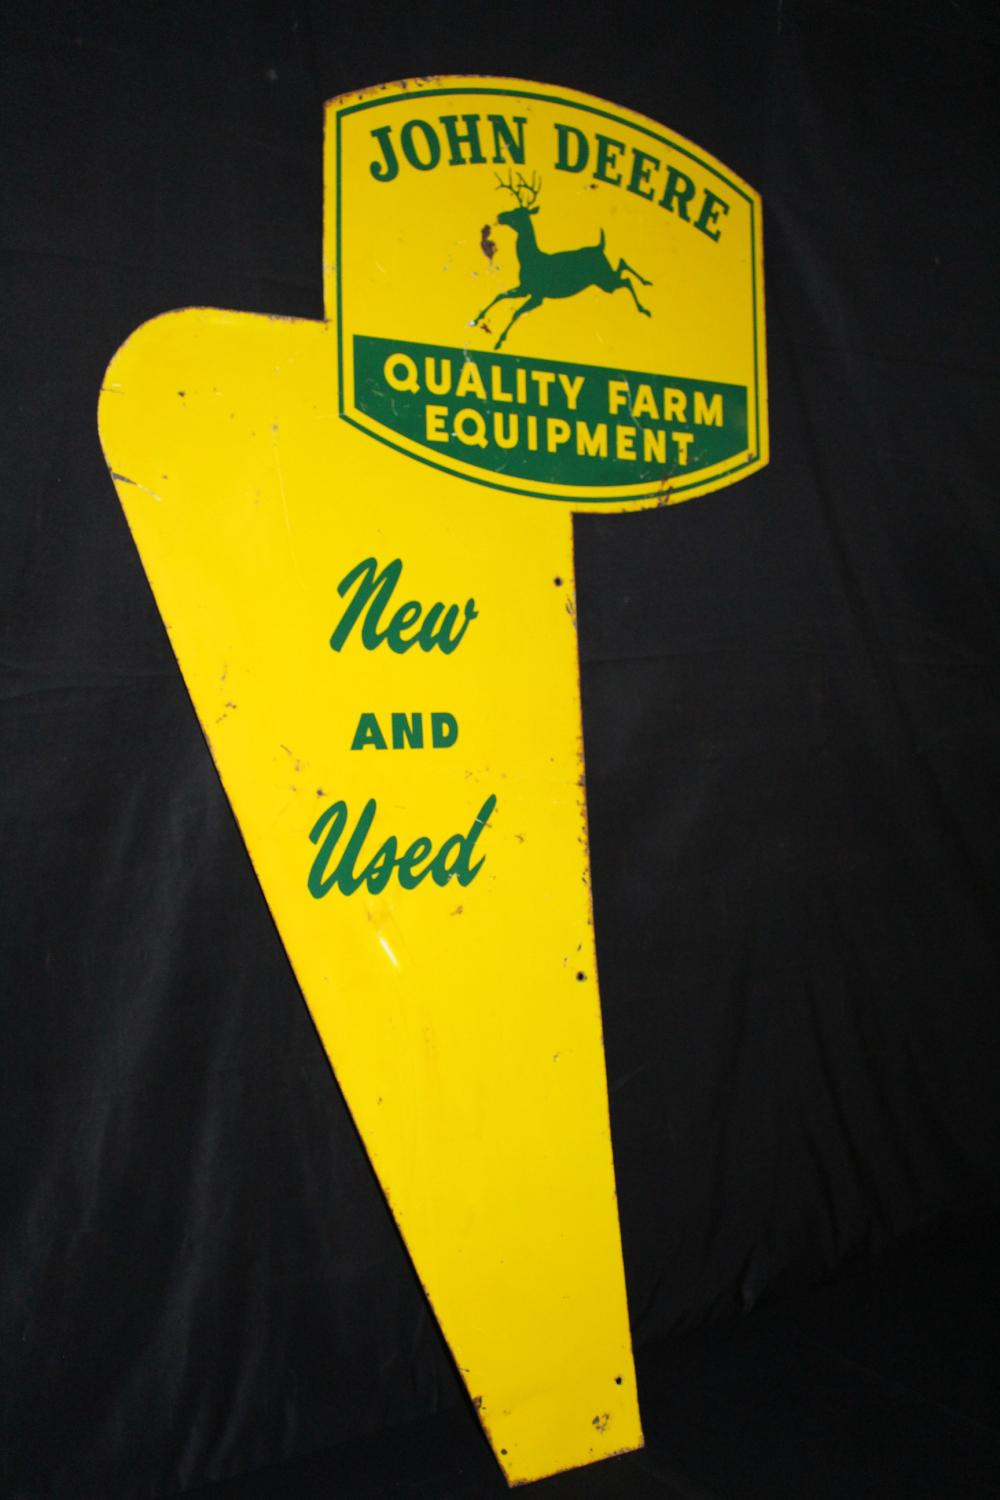 JOHN DEERE QUALITY NEW & USED EQUIPMENT SIGN